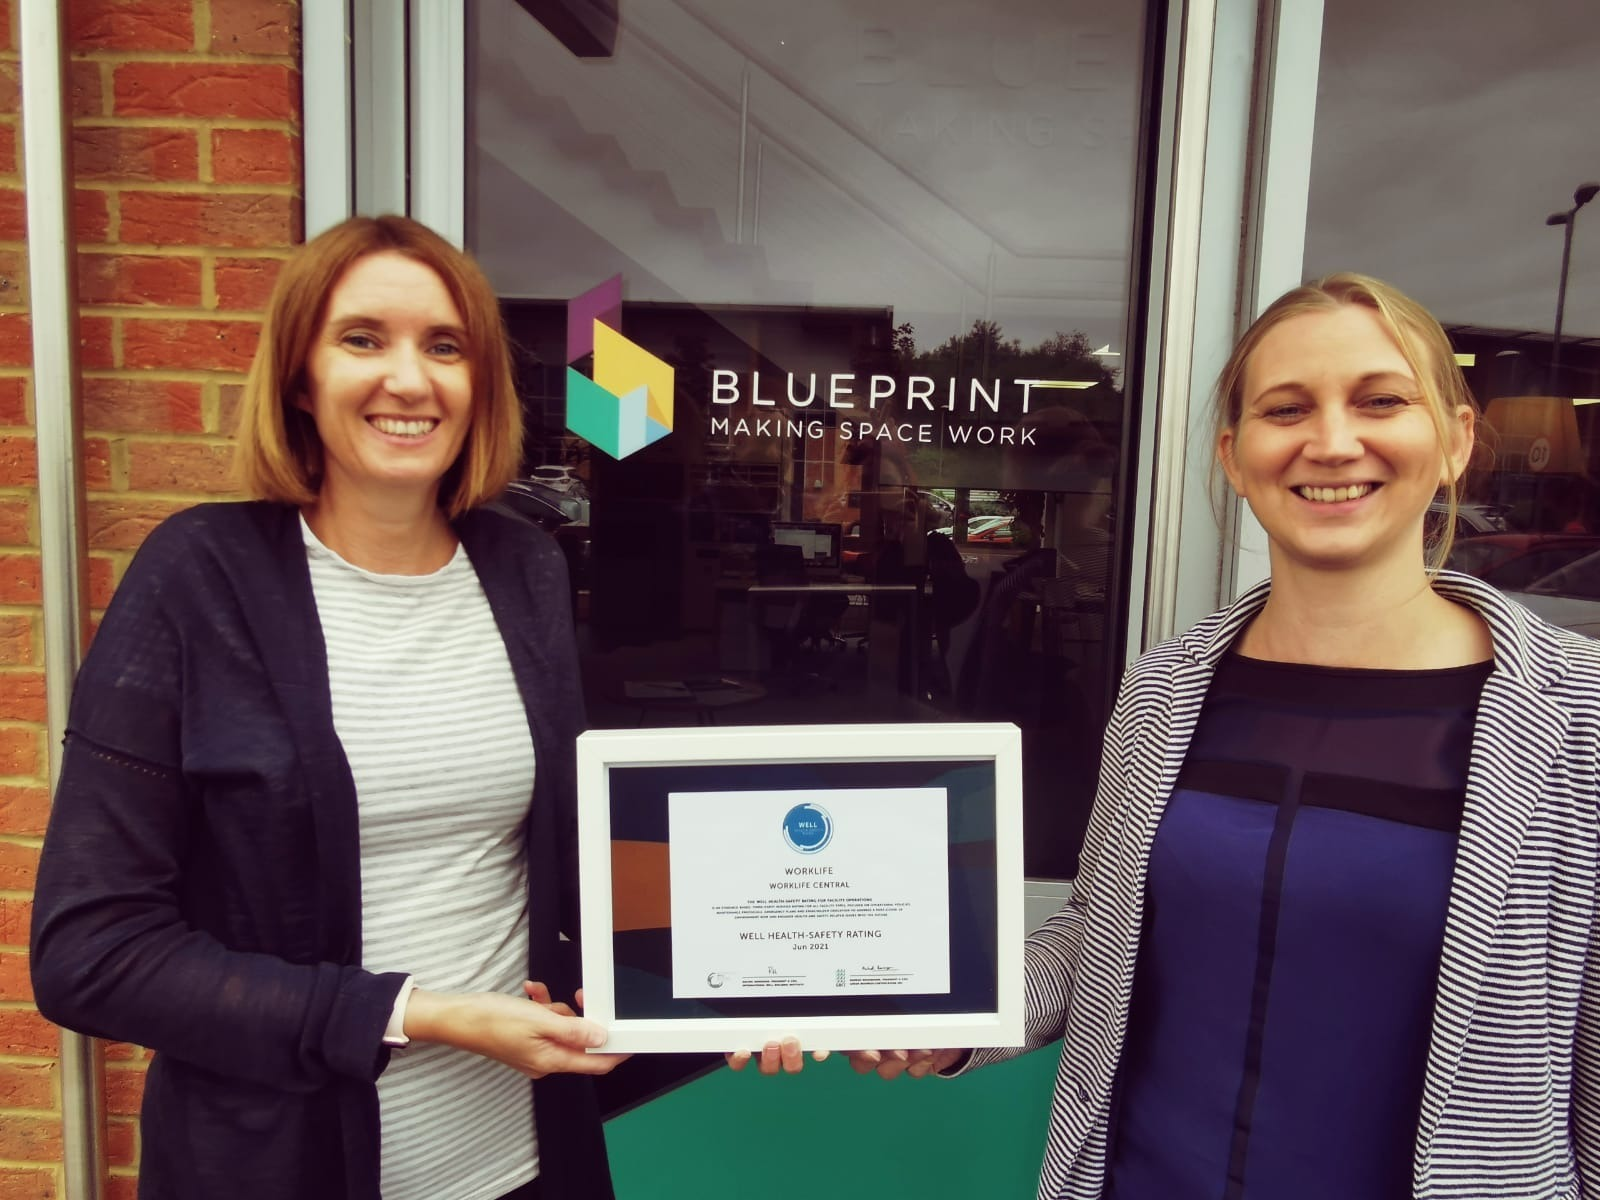 Blueprint Interiors first in East Midlands to achieve WELL Health Safety Rating